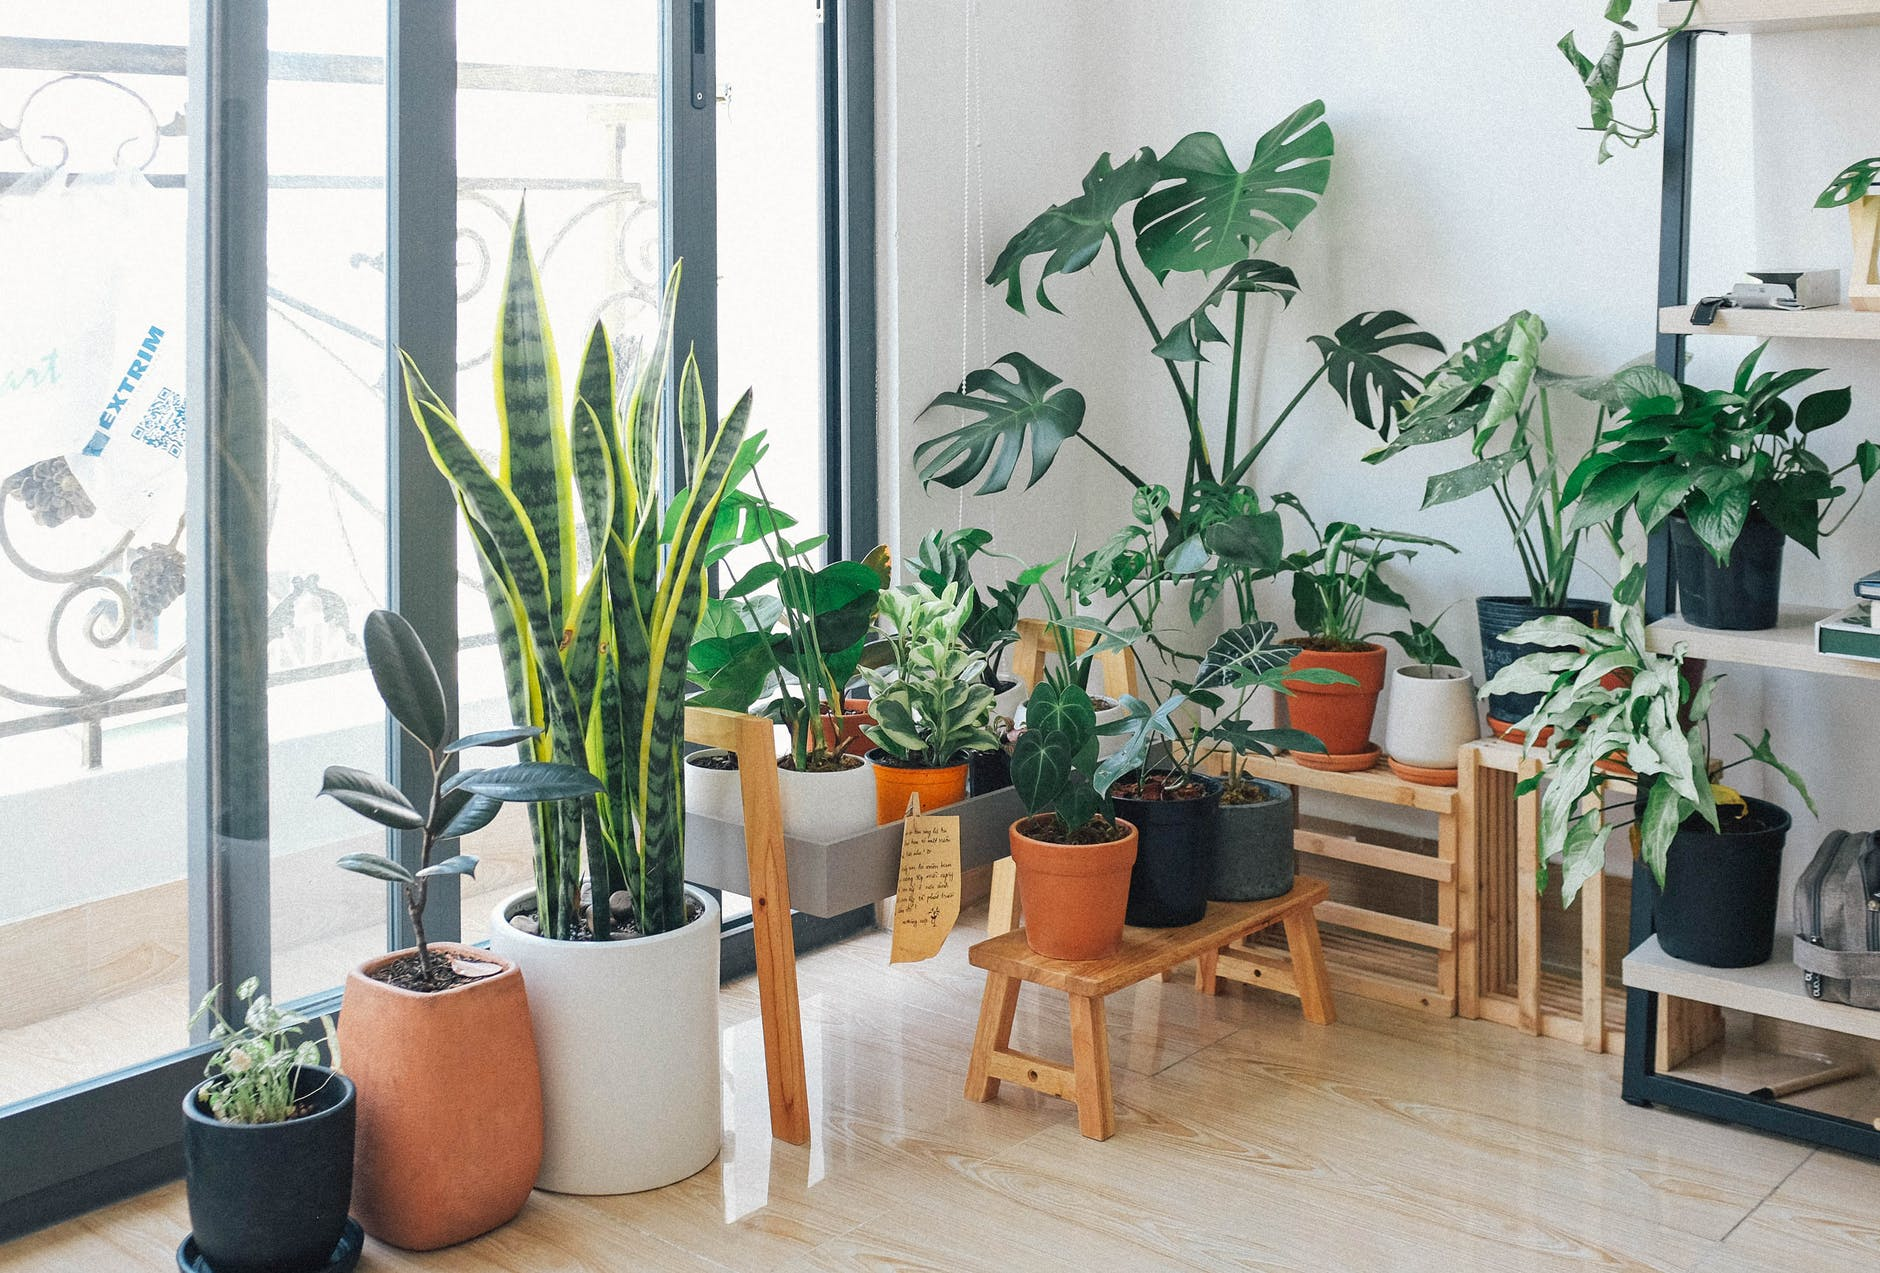 Most Demanding Indoor Plants to Liven Up Your Home Decor